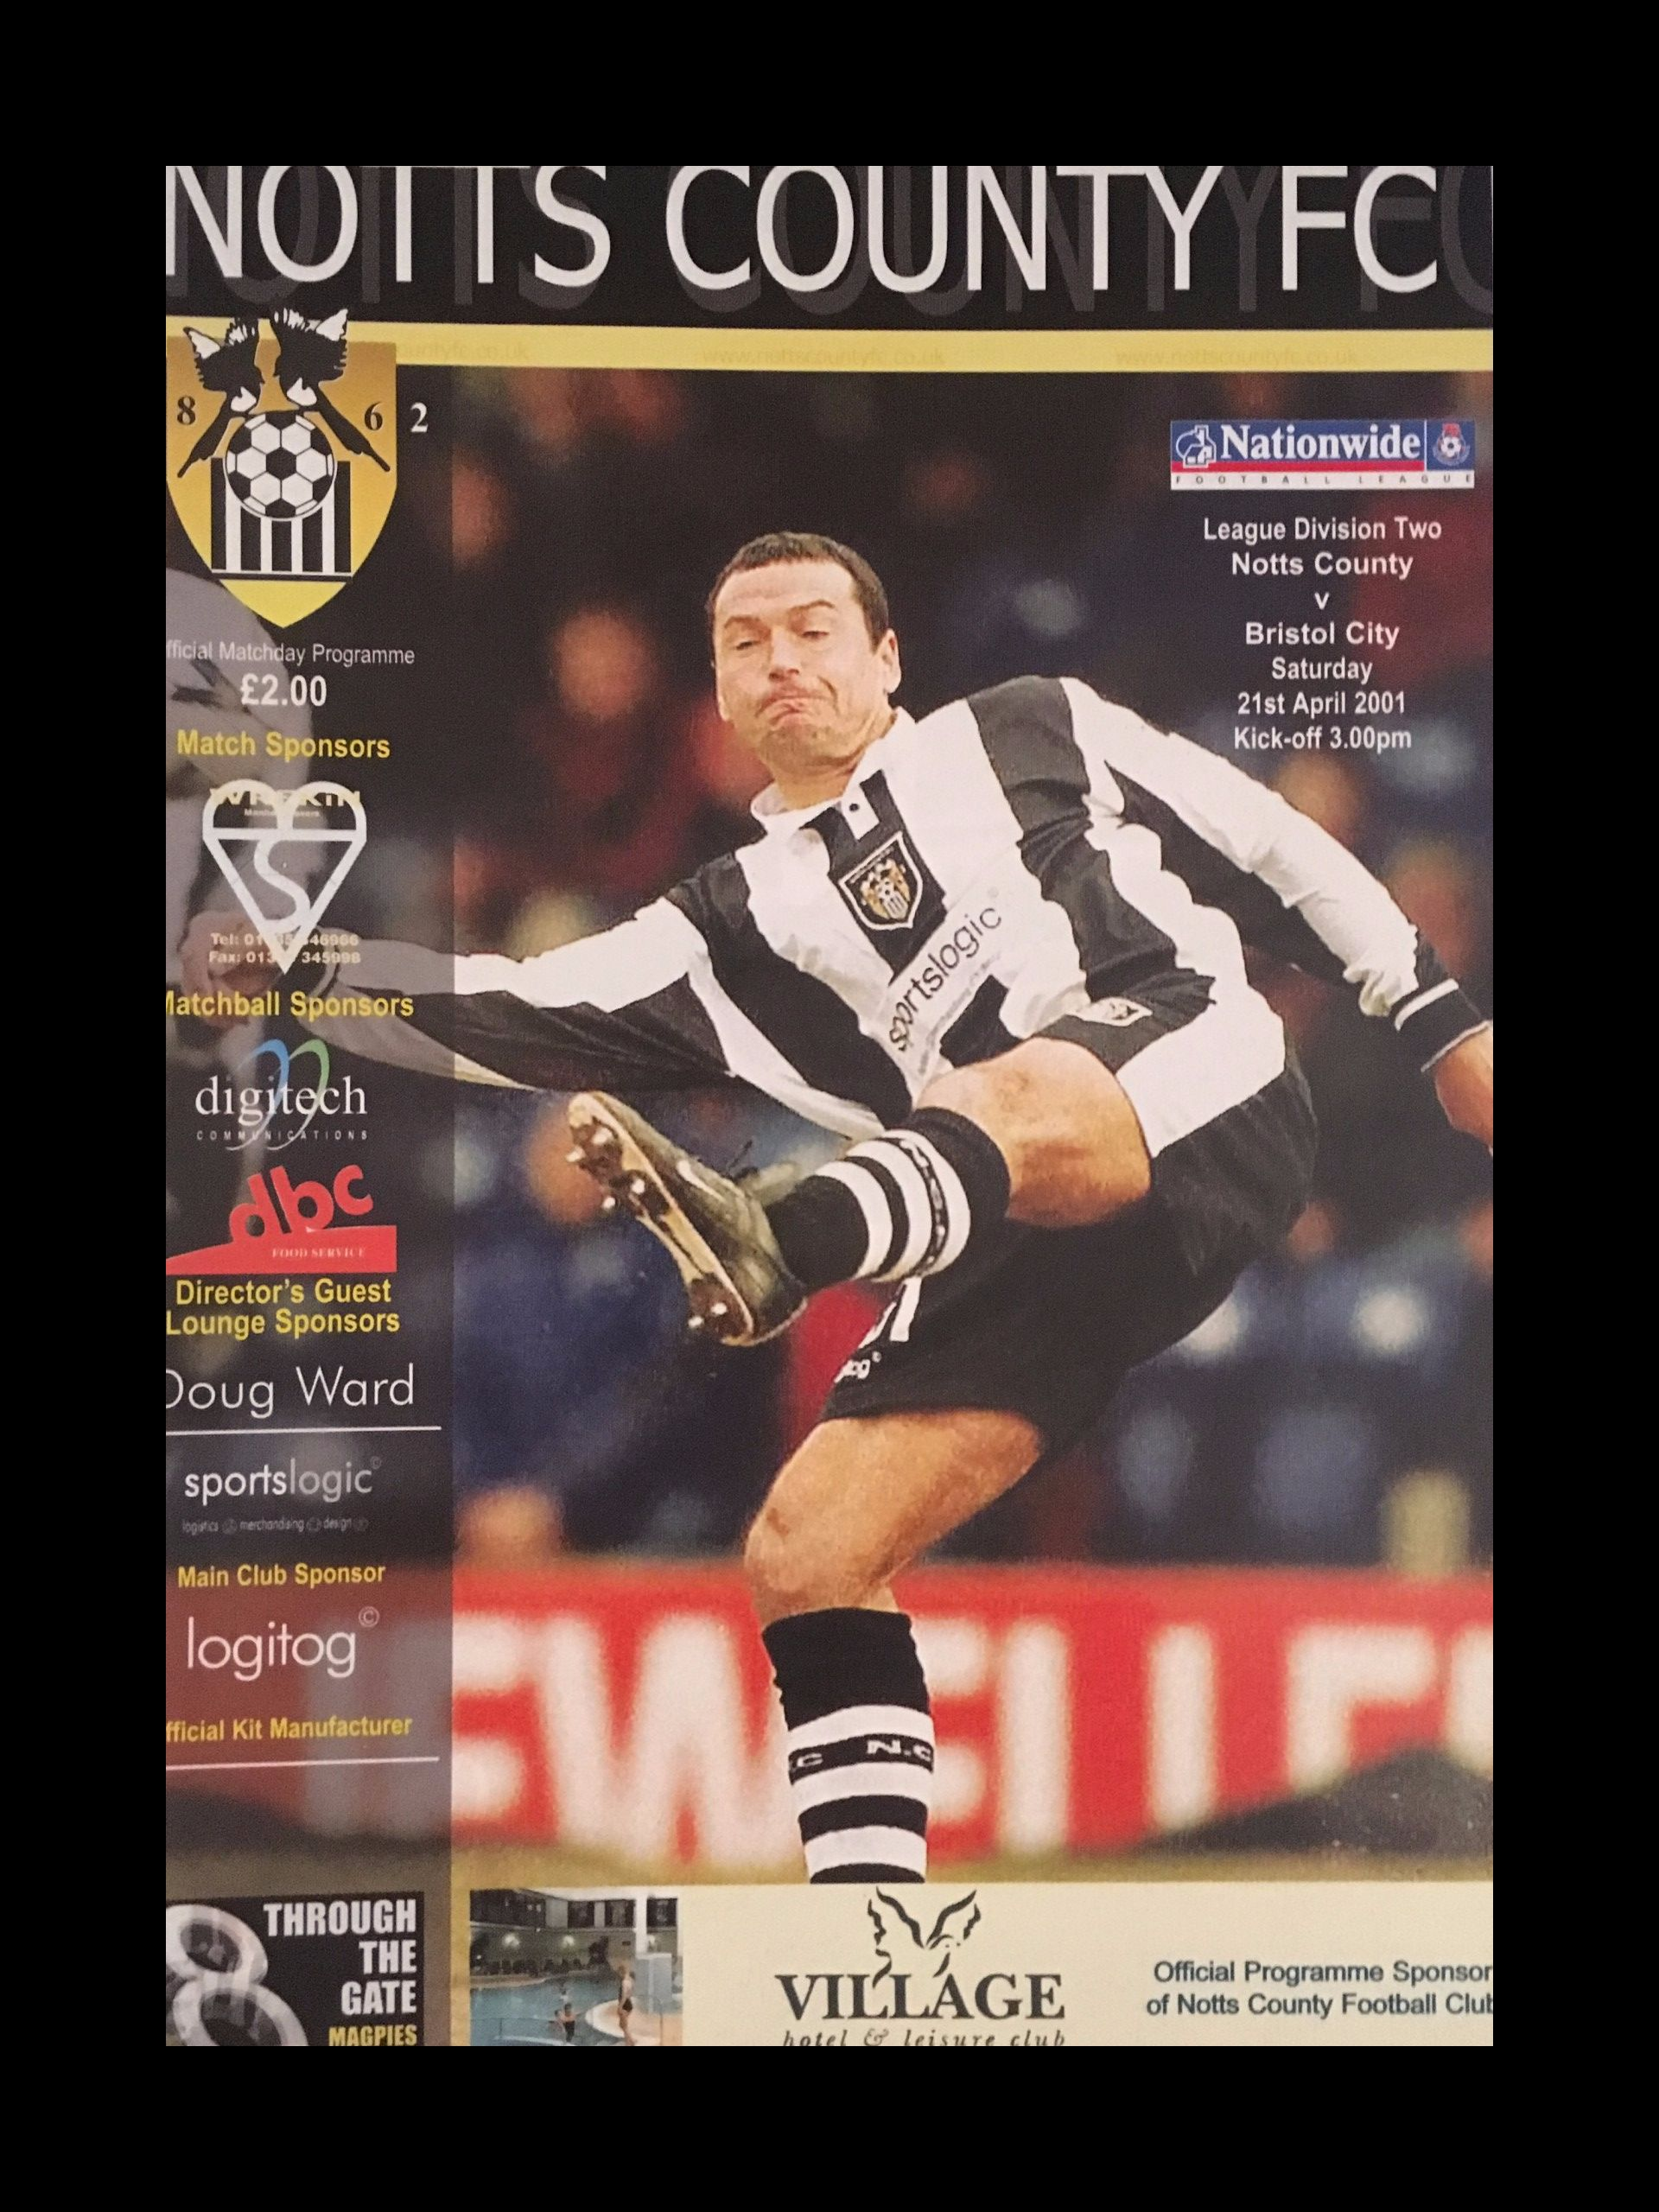 Notts County v Bristol City 21-04-2001 Programme